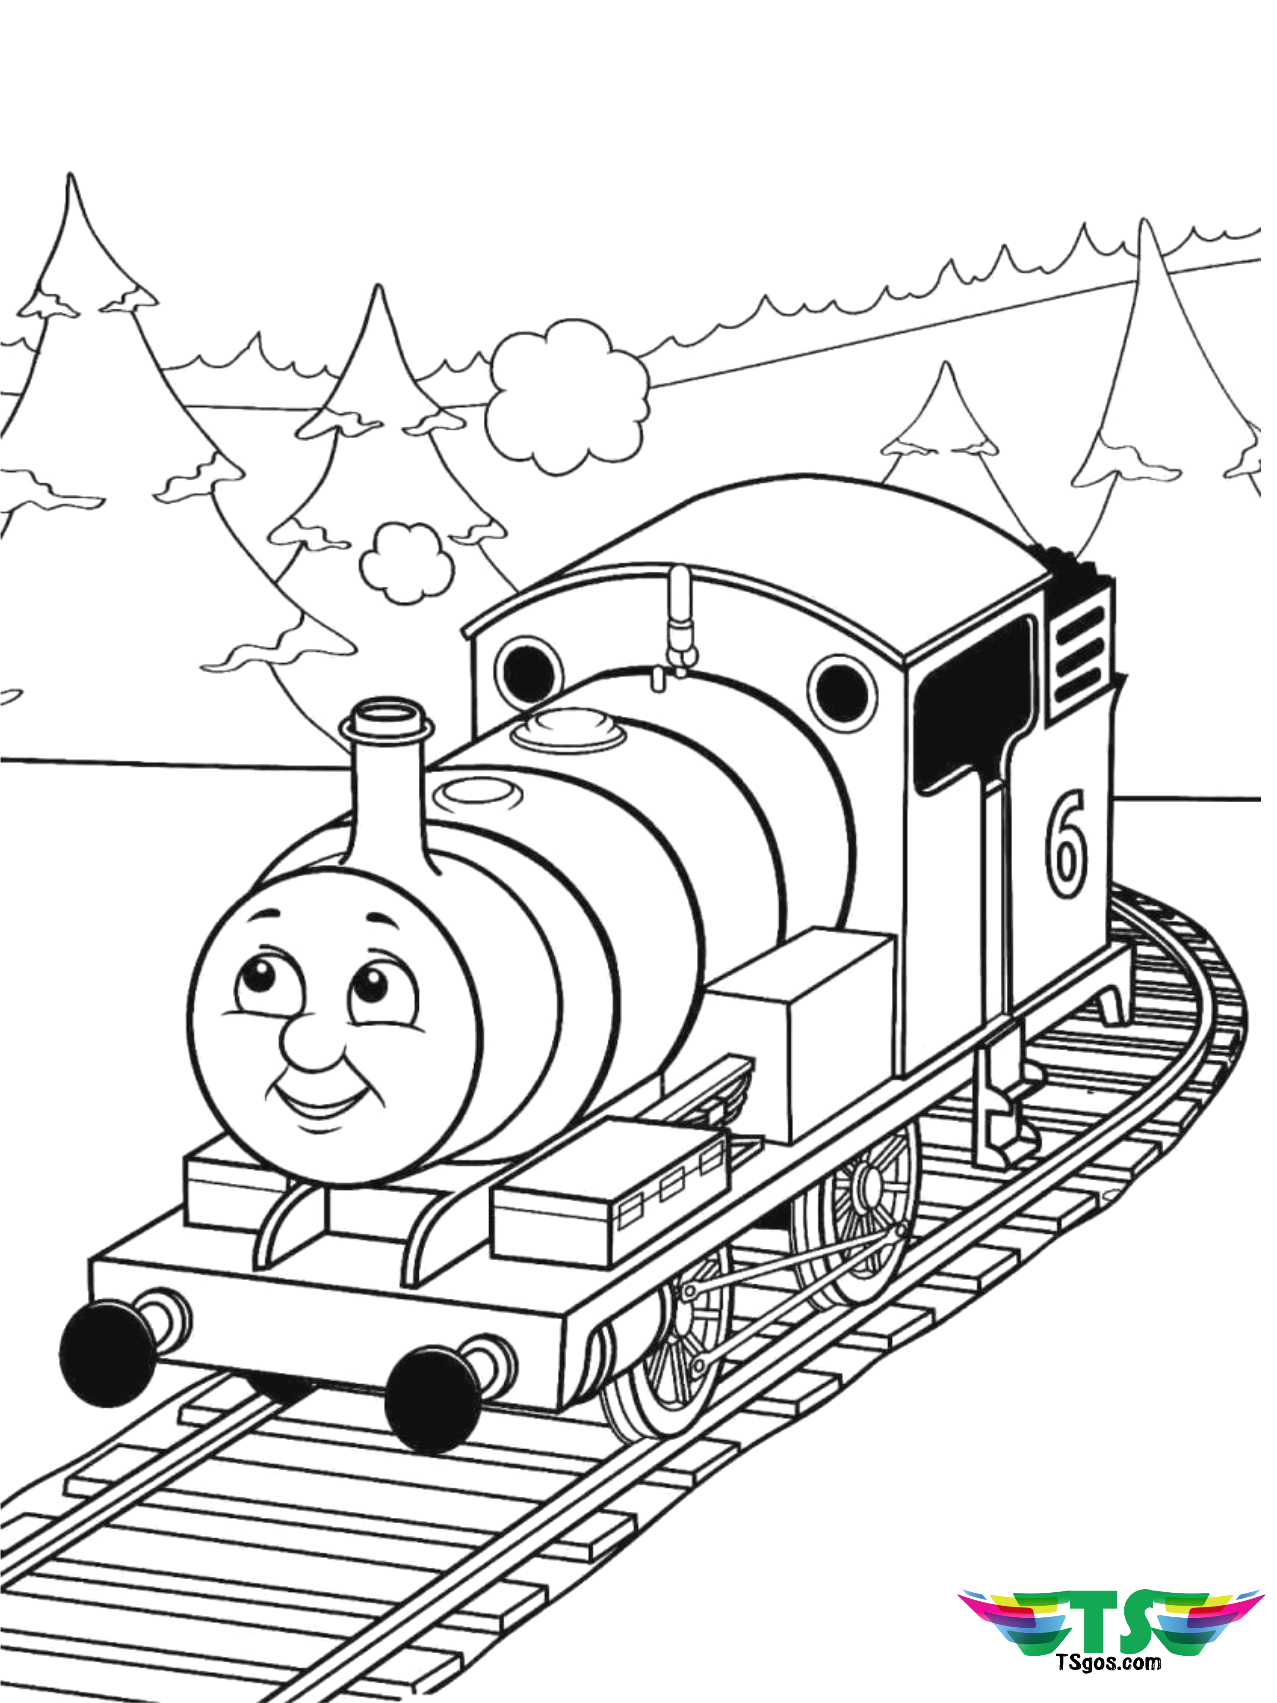 thomas the tank engine train coloring page